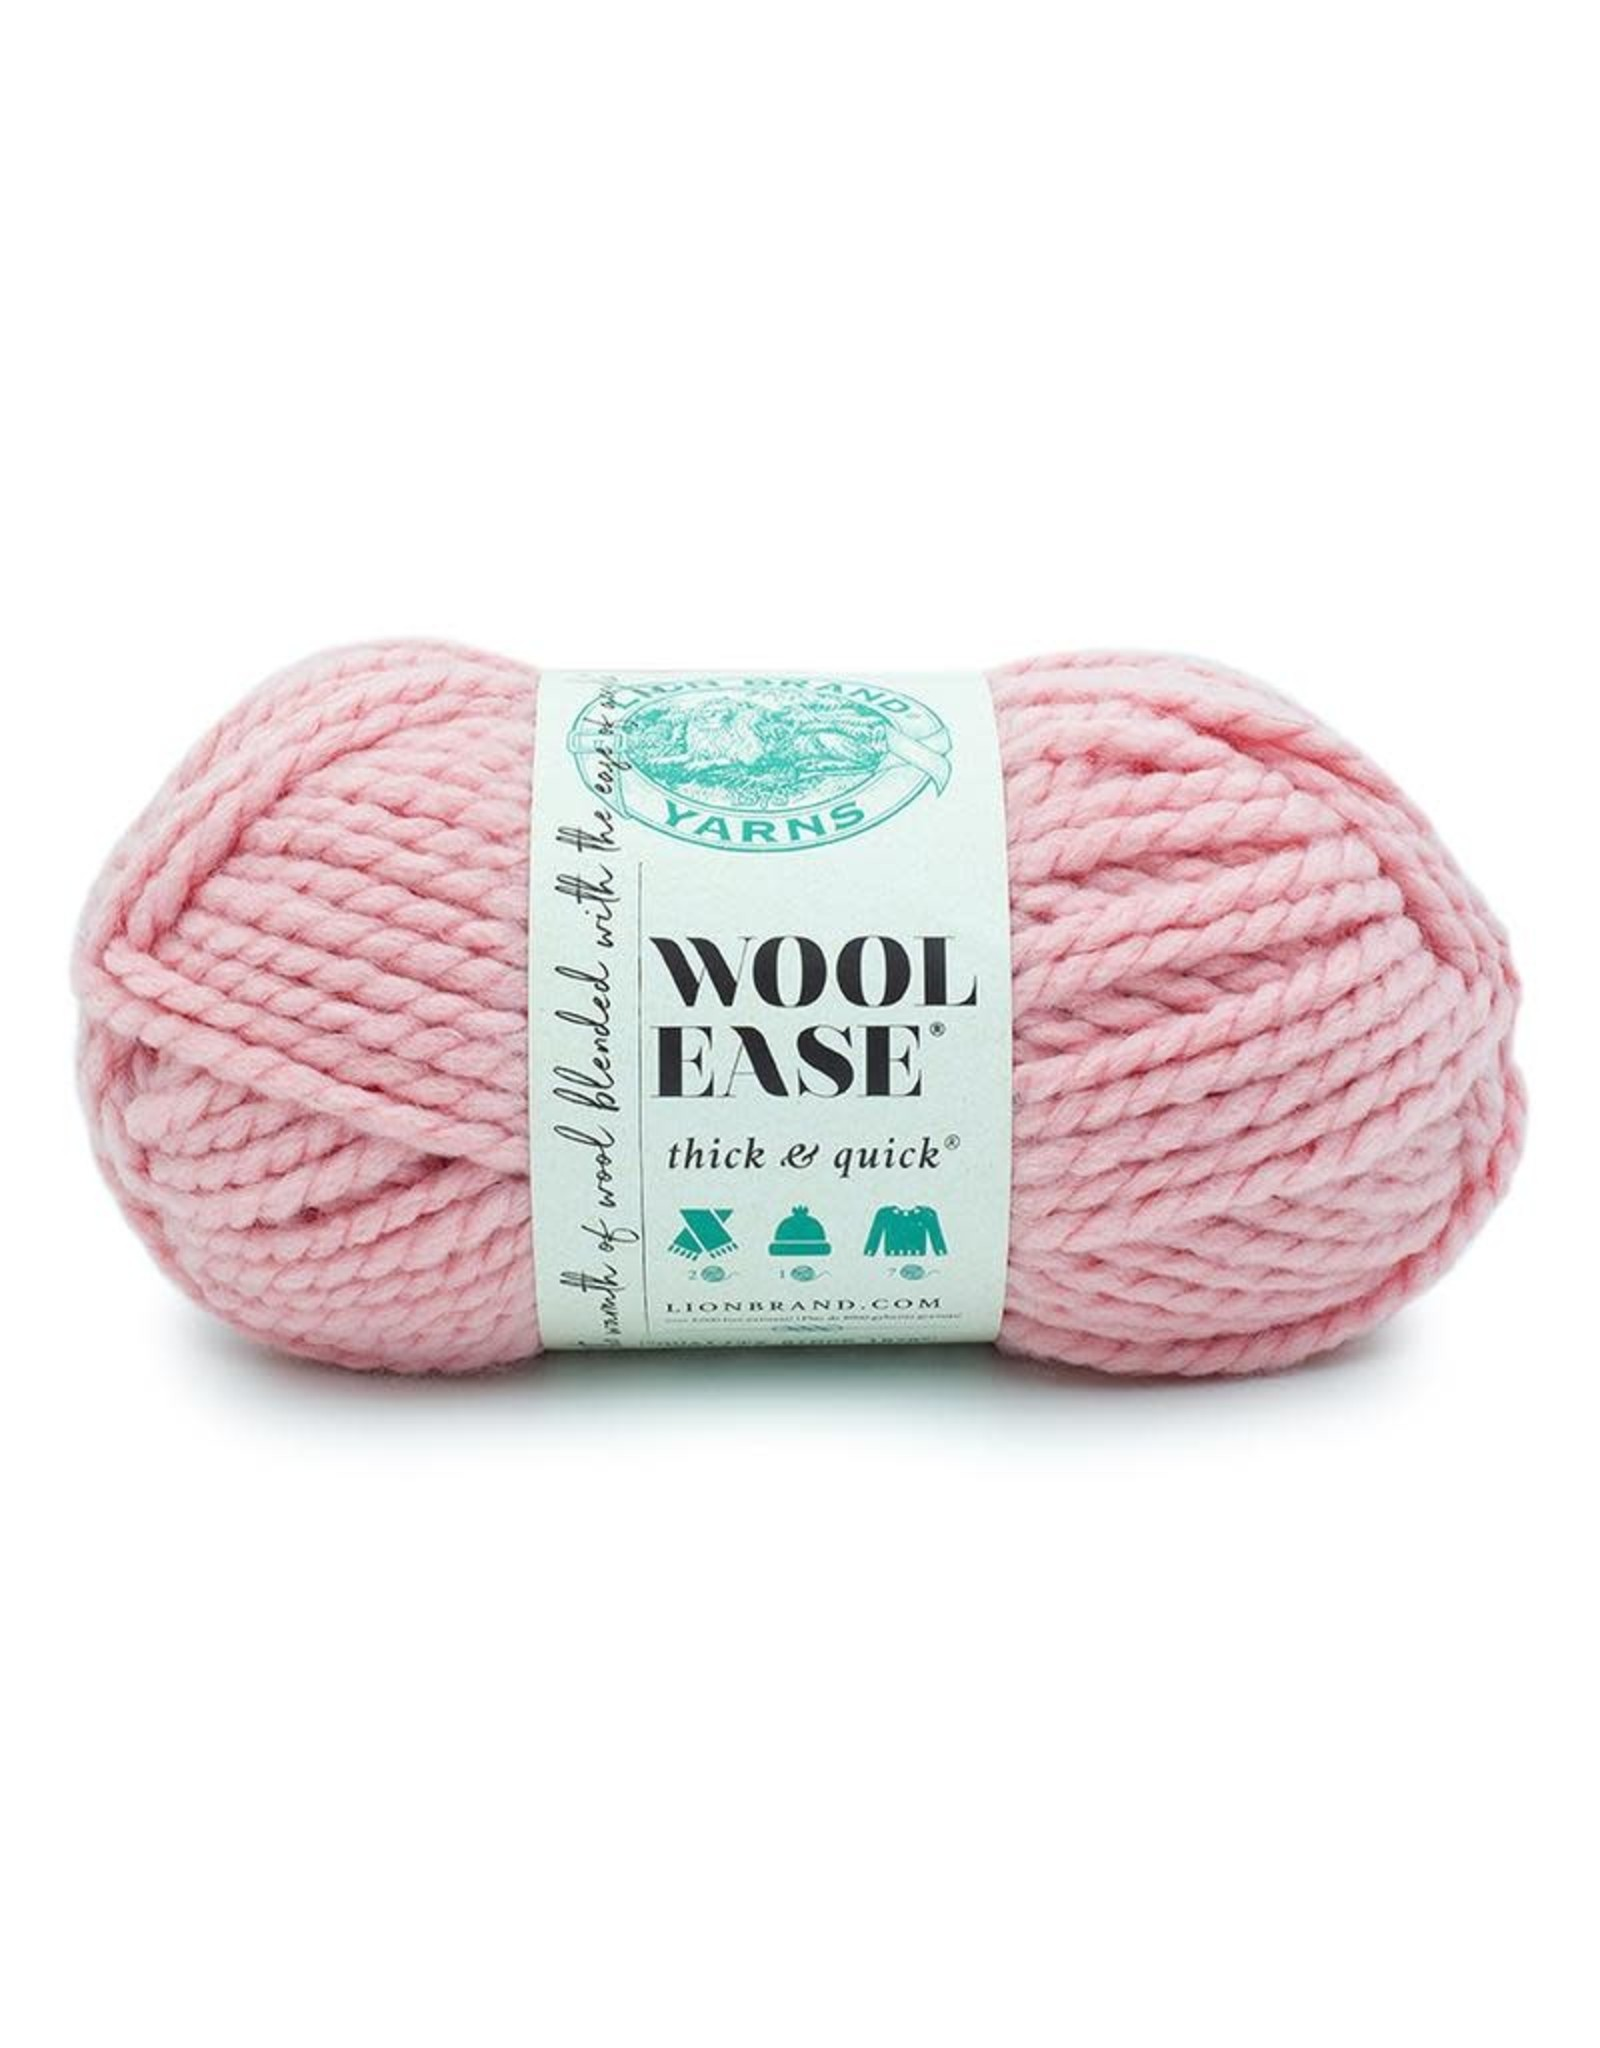 Rouge - Wool Ease Thick and Quick - Lion Brand